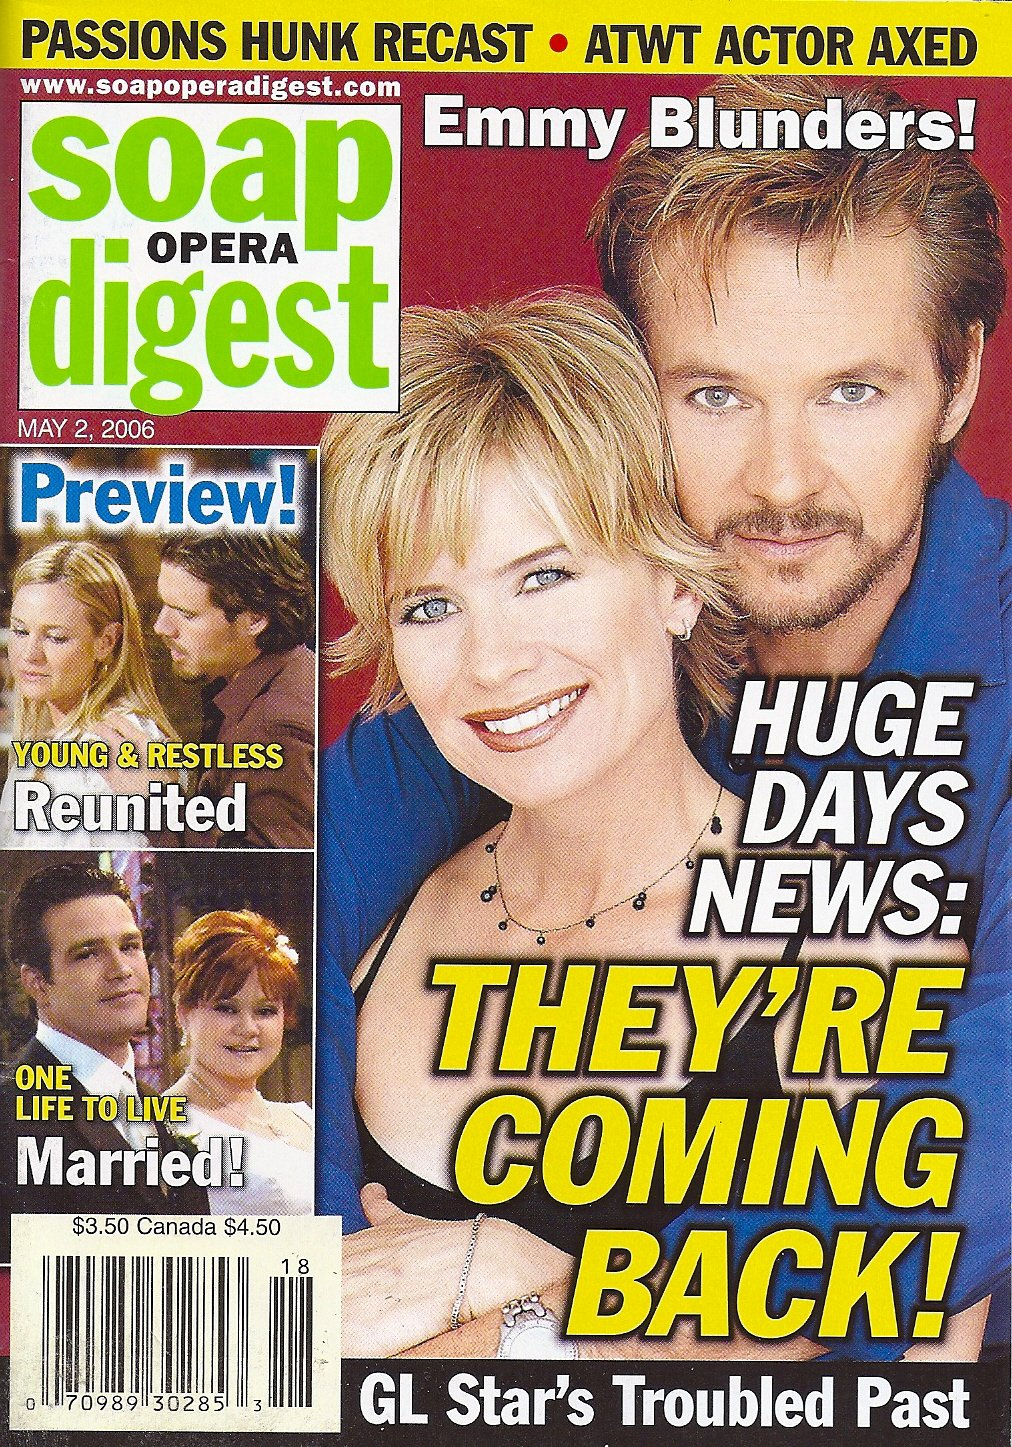 Stephen Nichols Mary Beth Evans Days Of Our Lives Jordan Clarke Emmy Blunders May 2 2006 Soap Opera Digest Magazine American Media Amazon Com Books